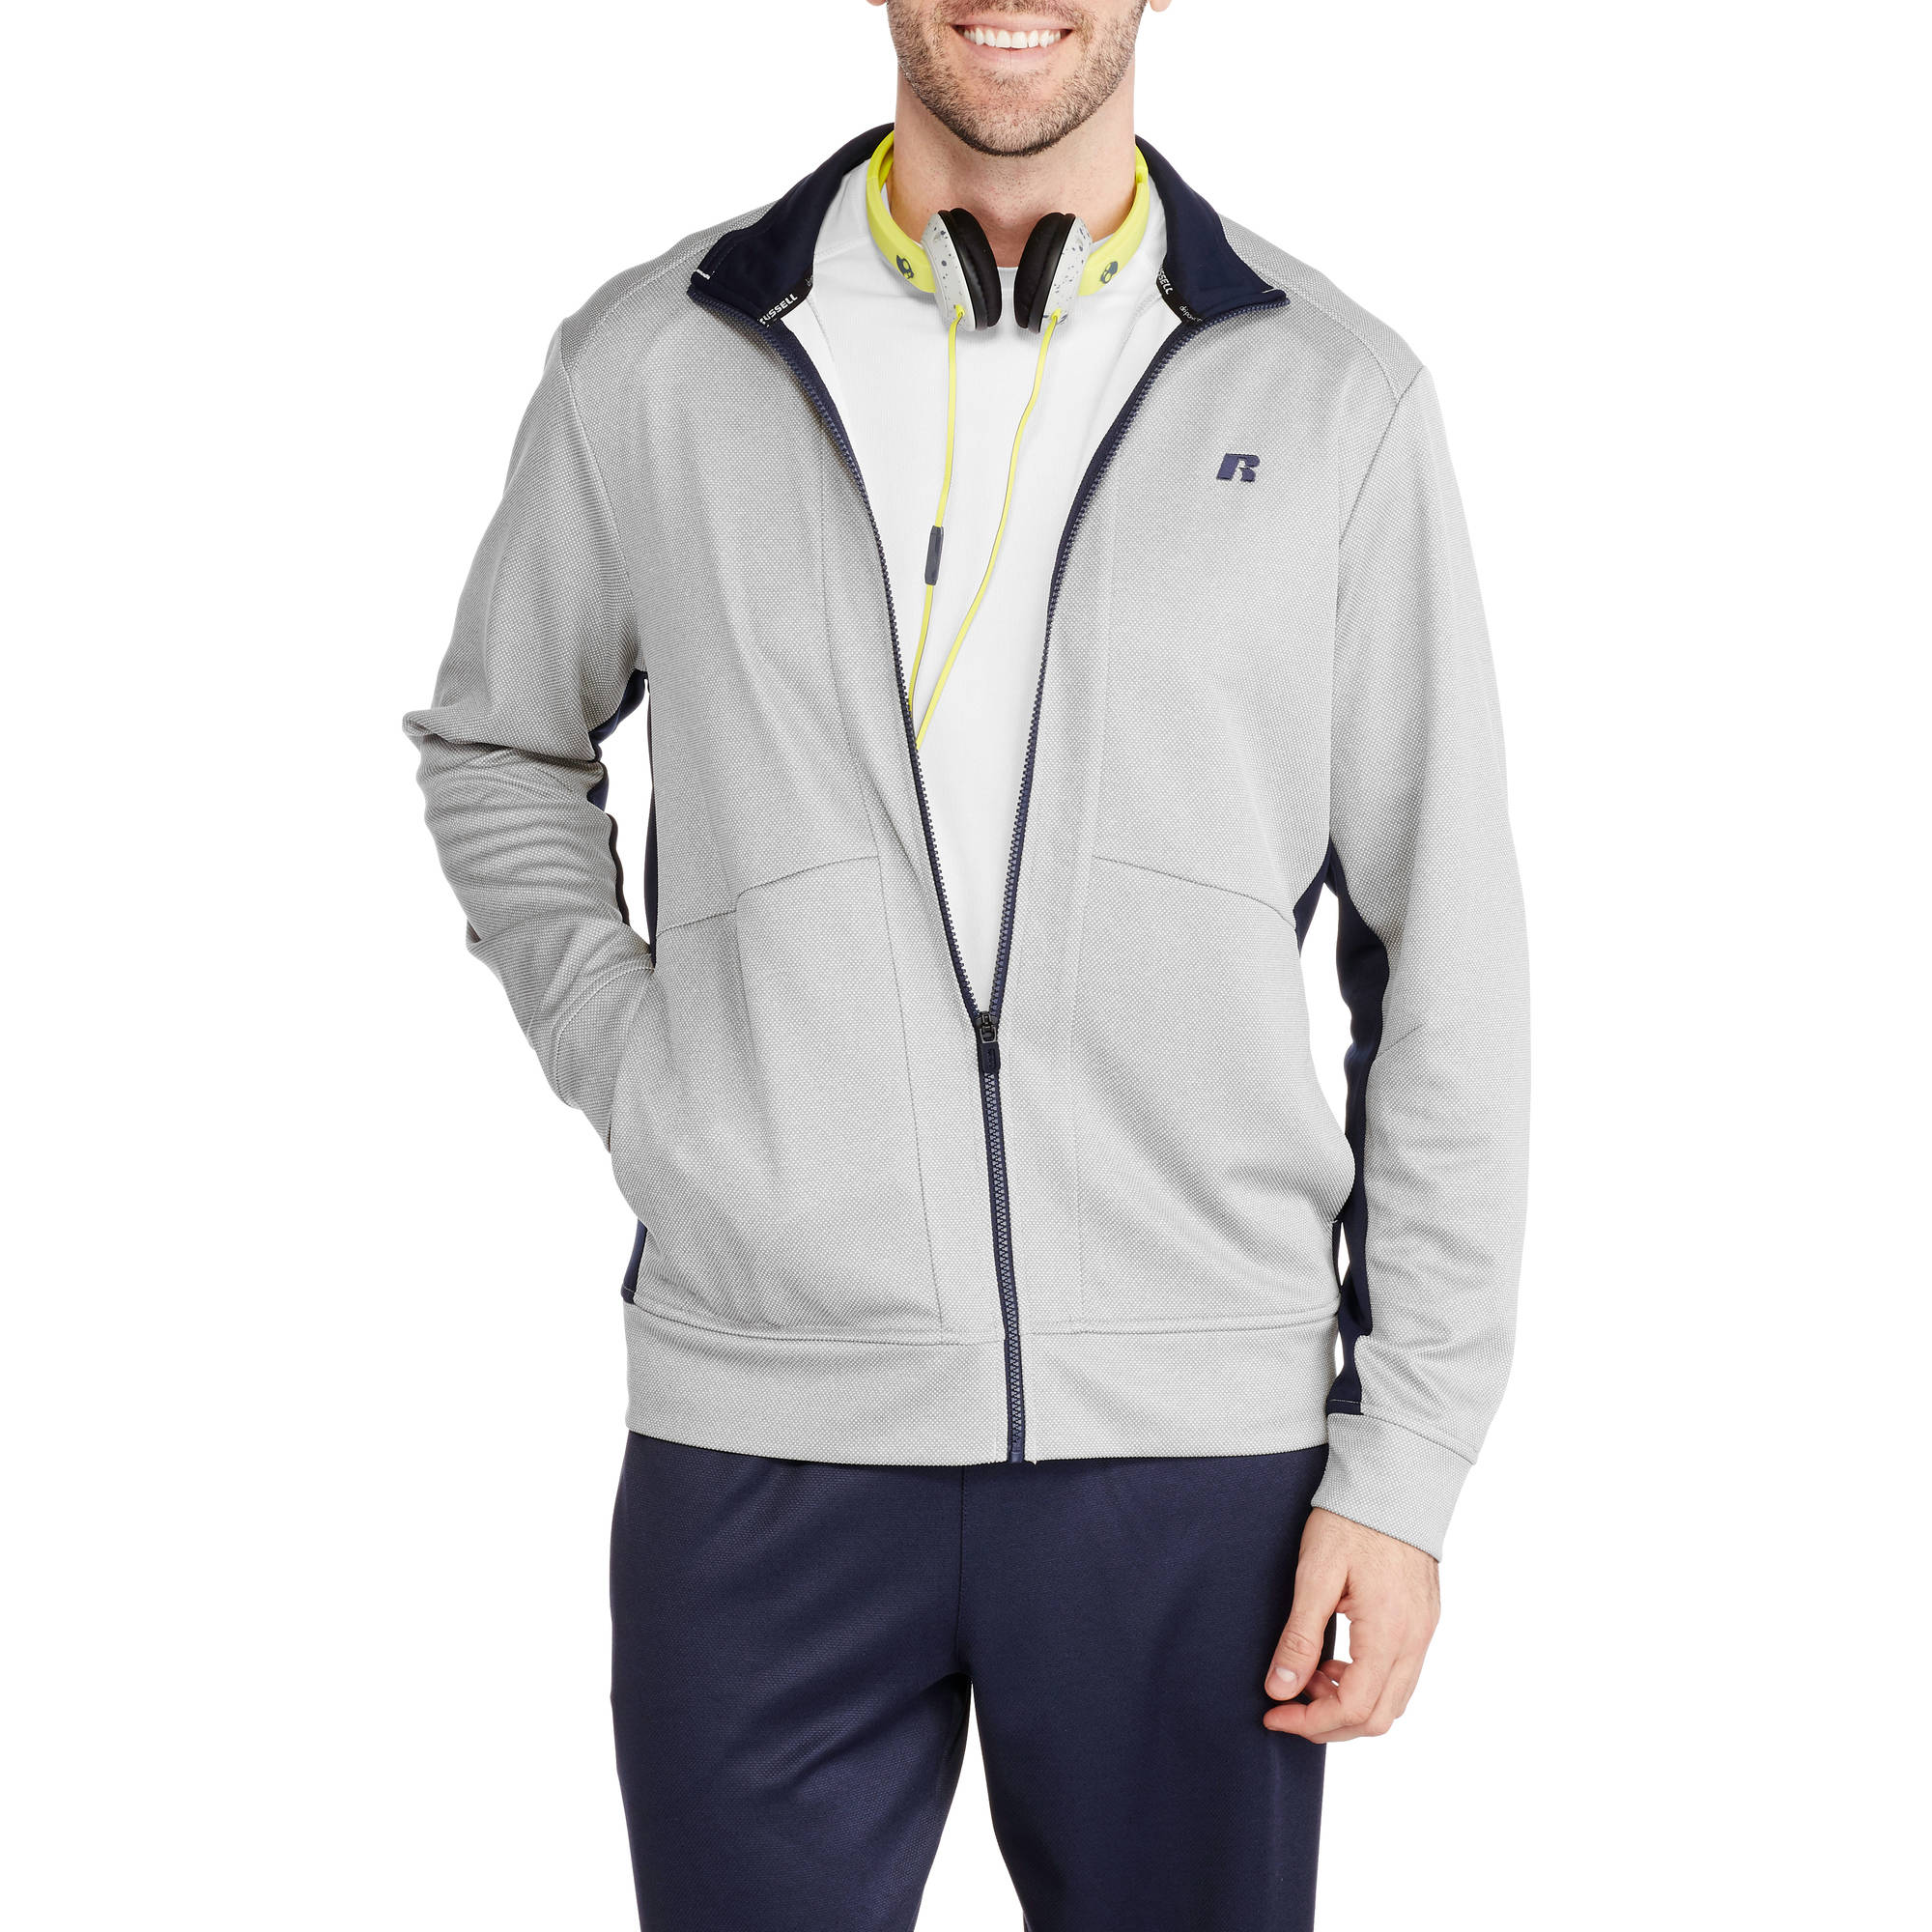 Russell Men's Knit Performance Jacket